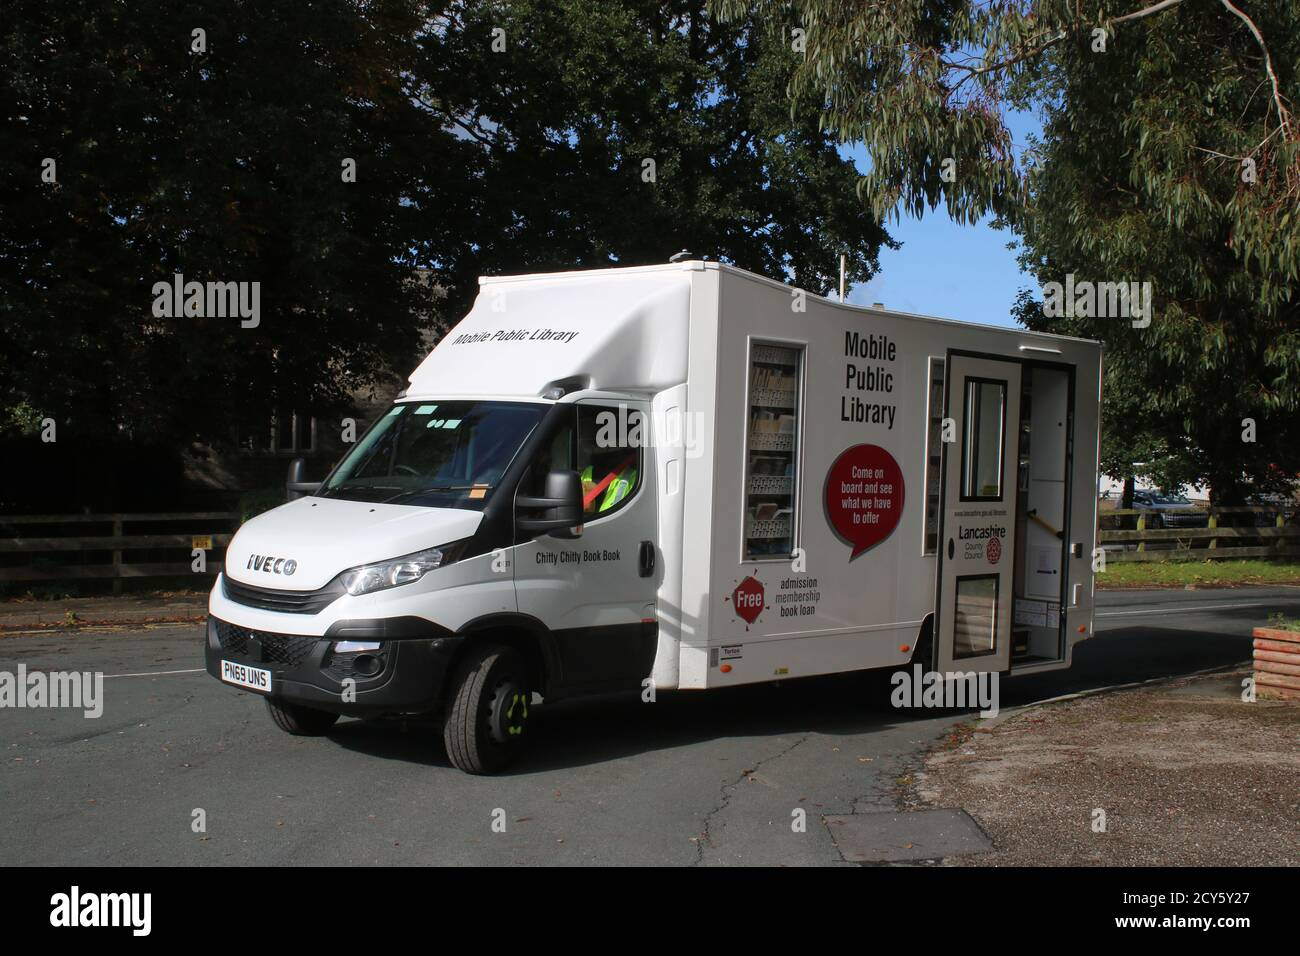 White Iveco van in use as a Mobile Public Library by Lancashire County Council seen parked on Fluke Hall Lane in Pilling, Preston October 2020. Stock Photo